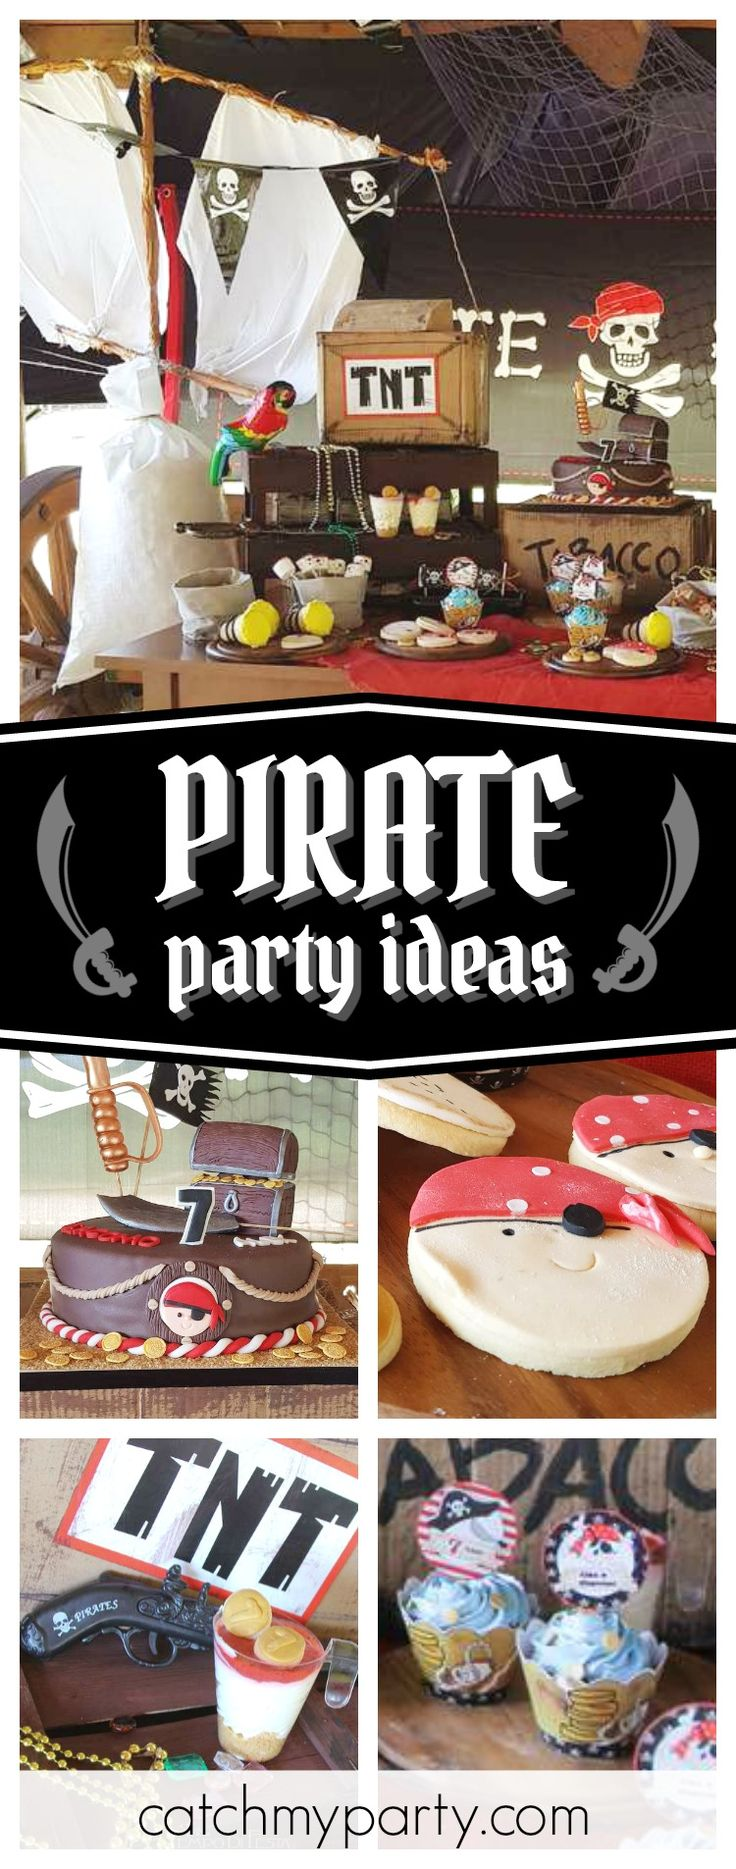 Check out this fun Pirate birthday party for twins!! The birthday cake is awesome!! See more party ideas and share yours at CatchMyParty.com